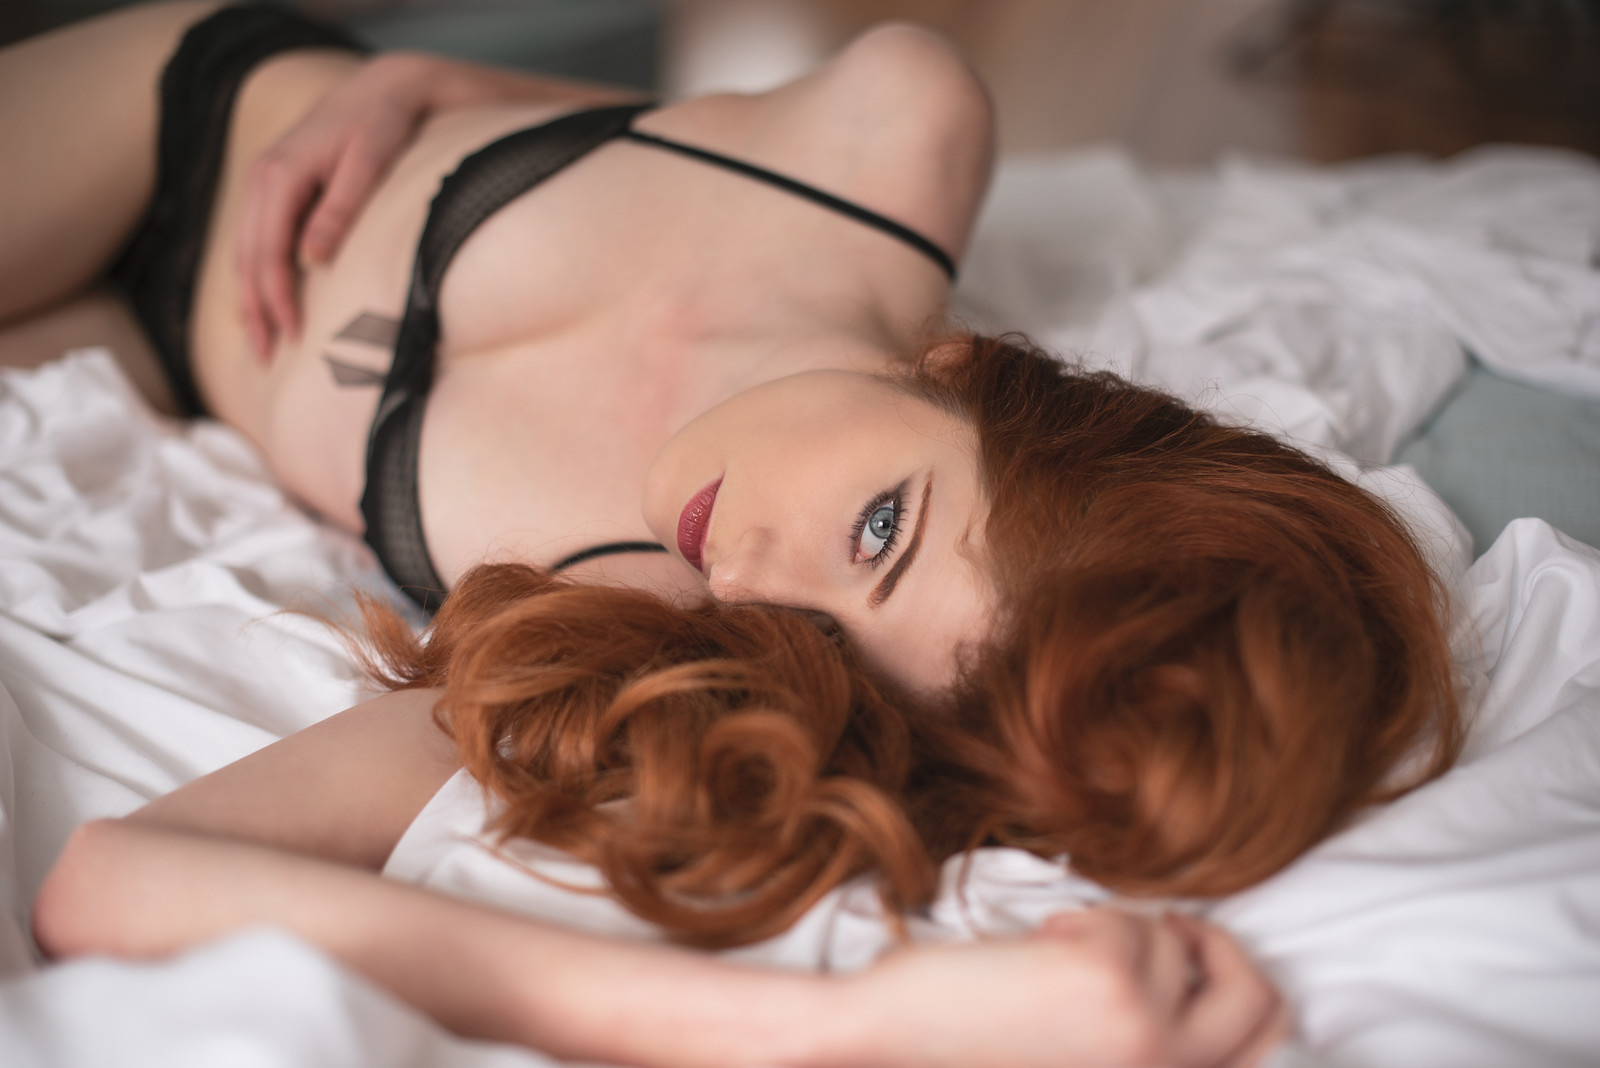 Boudoir Photography in Orlando, Lake Mary, Sanford, Altamonte Springs, Winter Park, Longwood, Florida